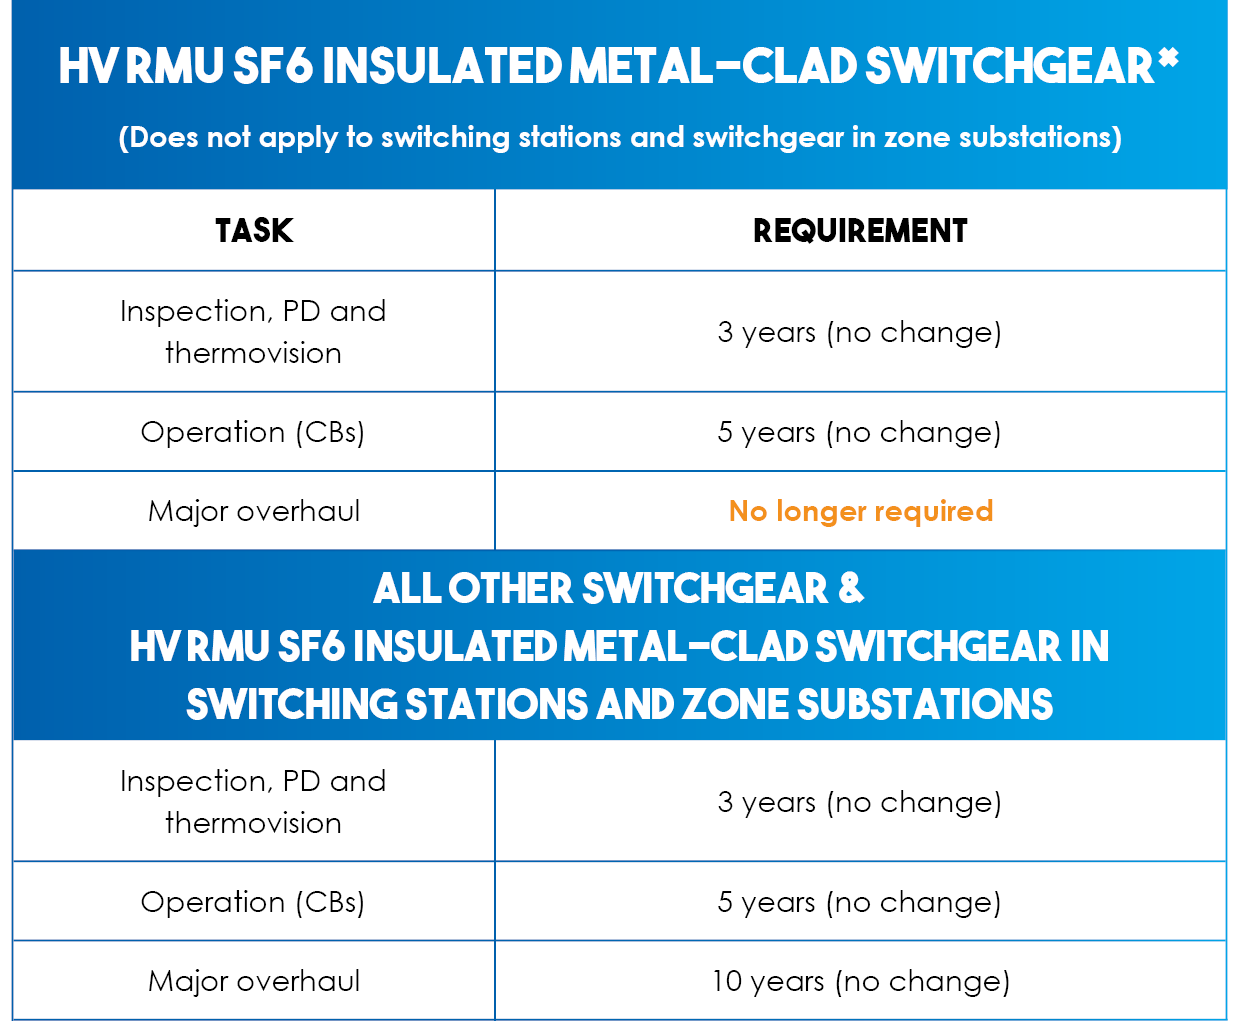 RMU SF6 insulated metal-clad HV switchgear tasks and requirements